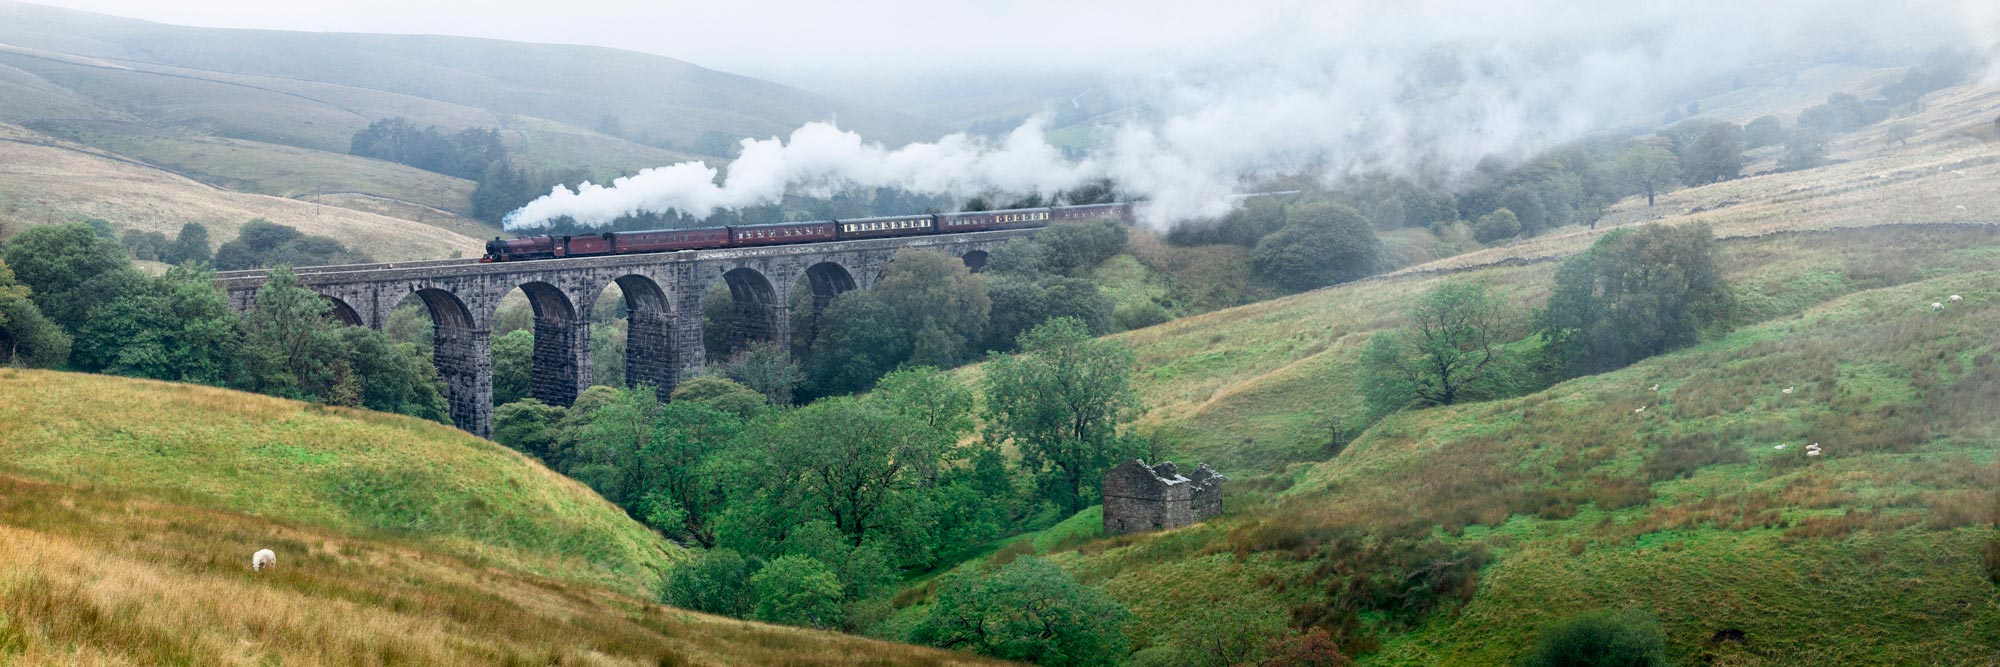 Dent head viaduct England